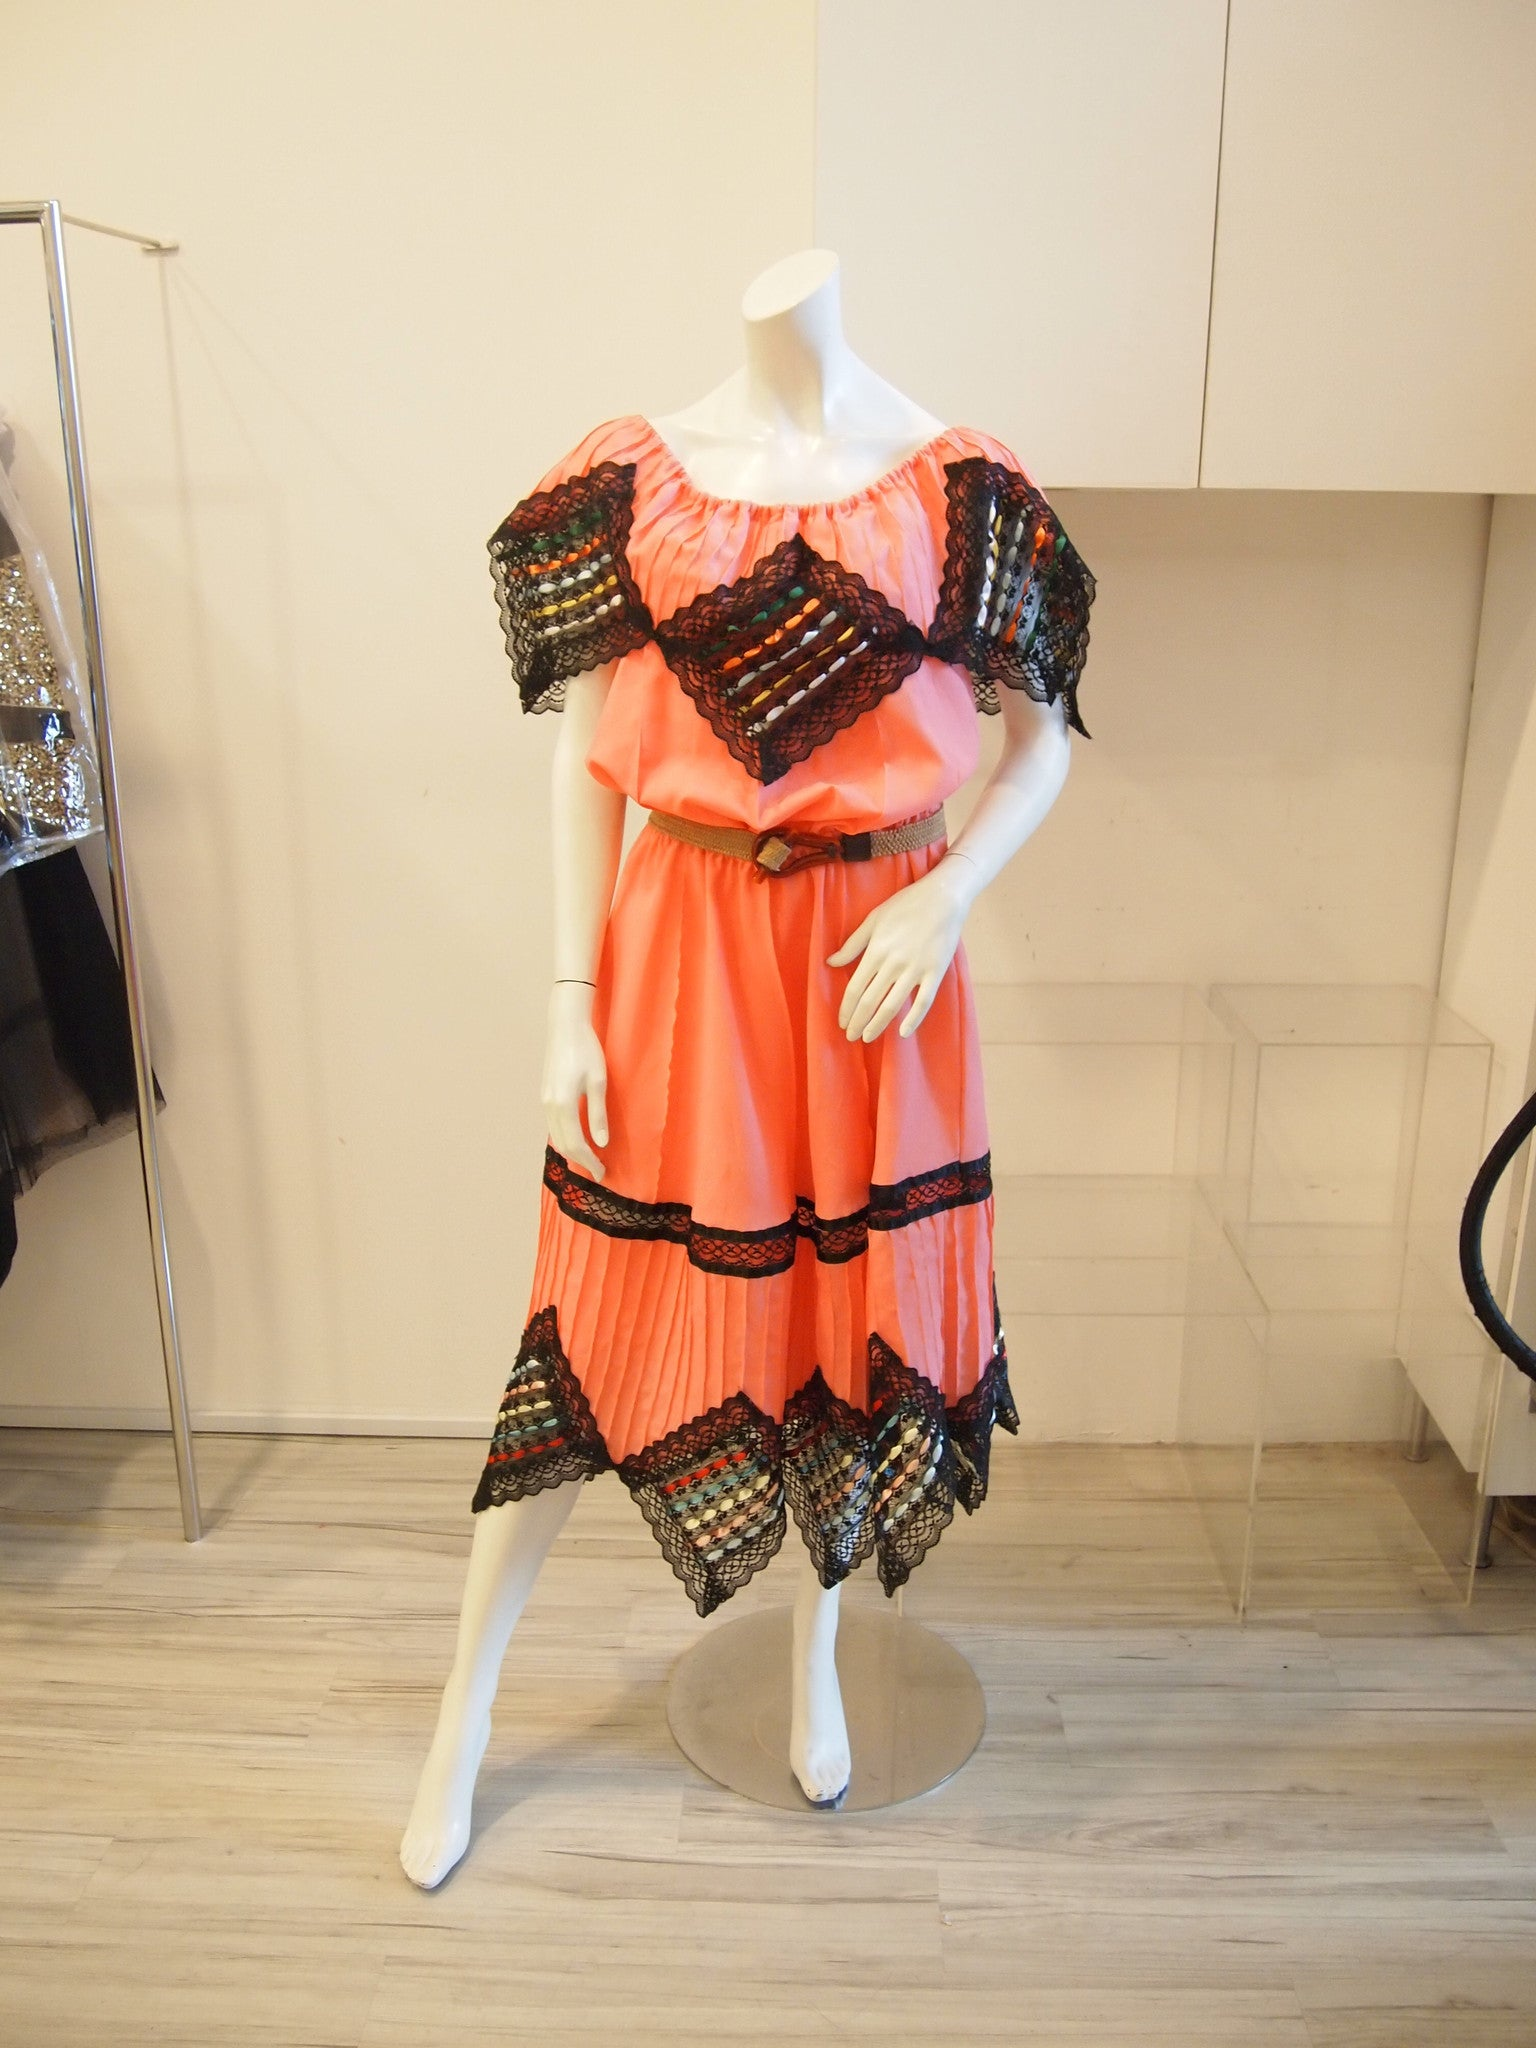 Coral Dress with Black Lace and Multi-colour Ribbon Trimmings